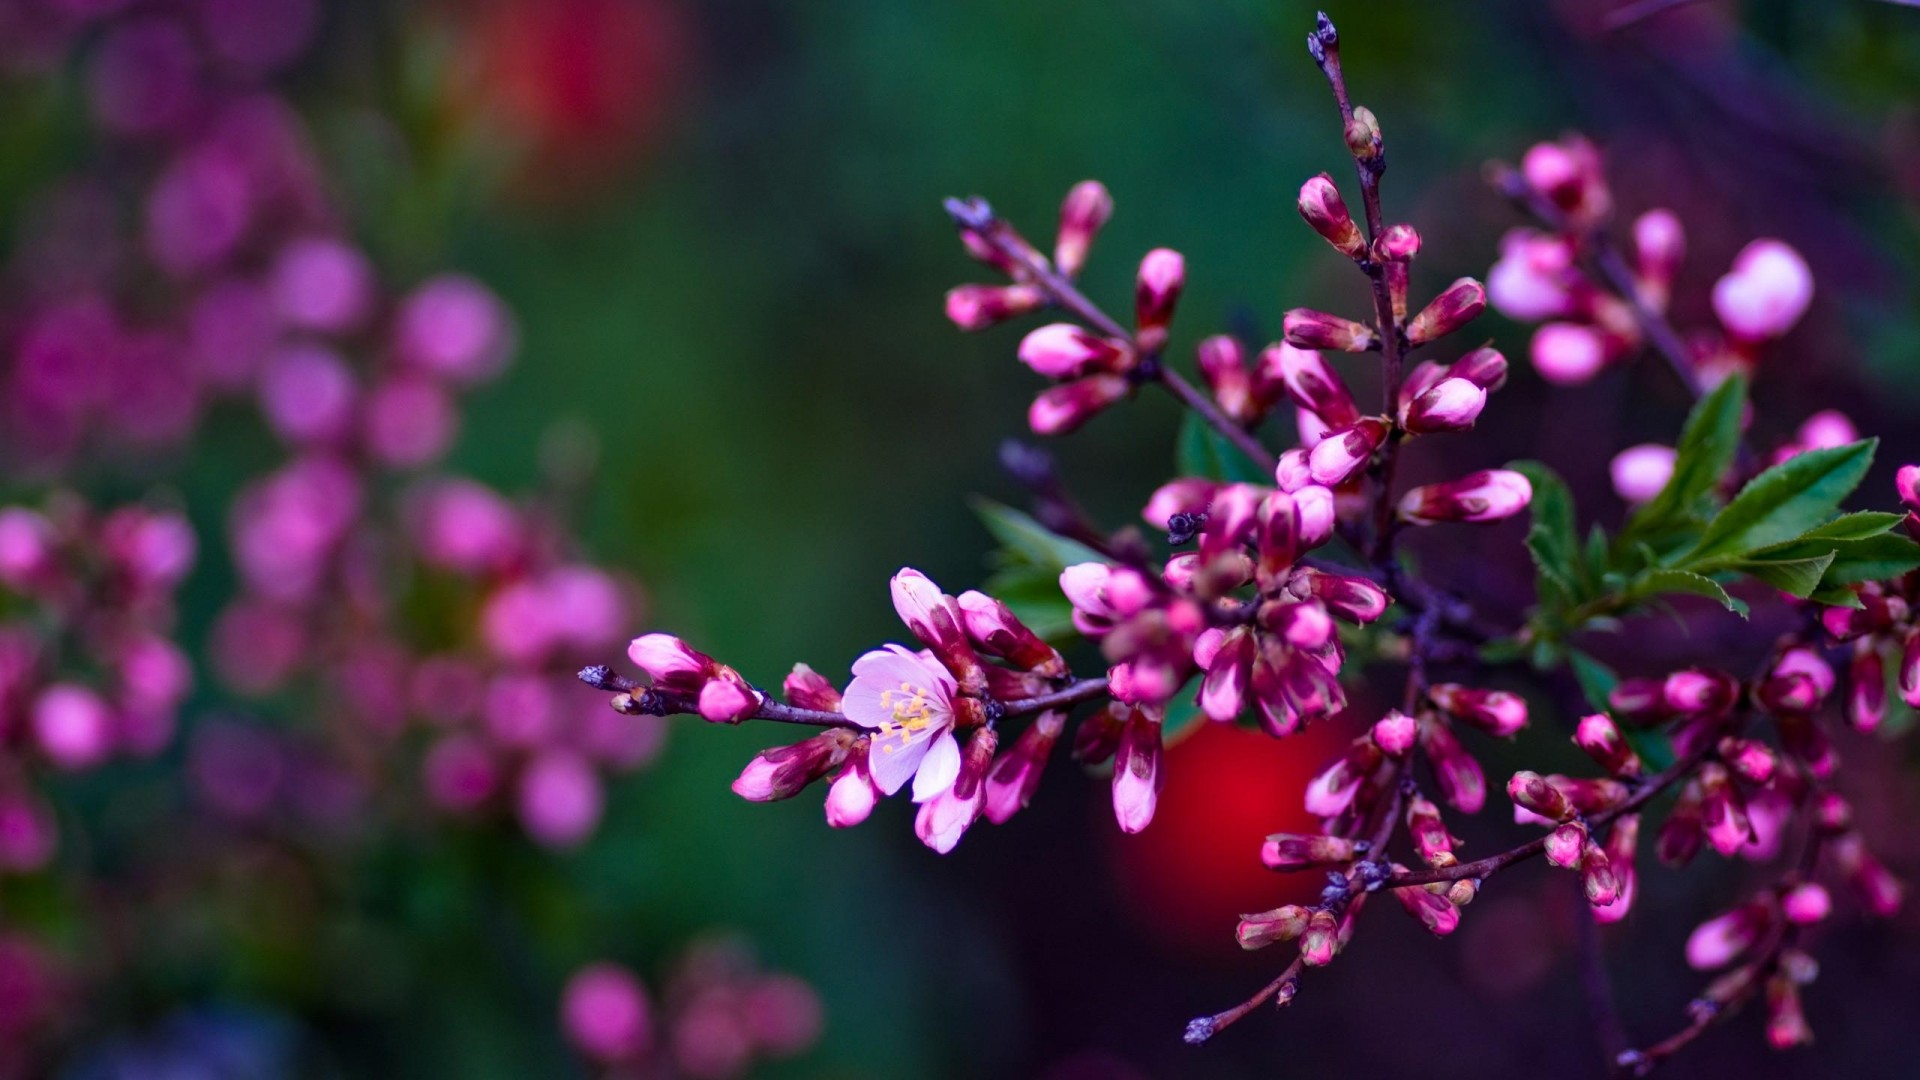 Spring Flowers Wallpapers HD Pictures One HD Wallpaper 1920x1080